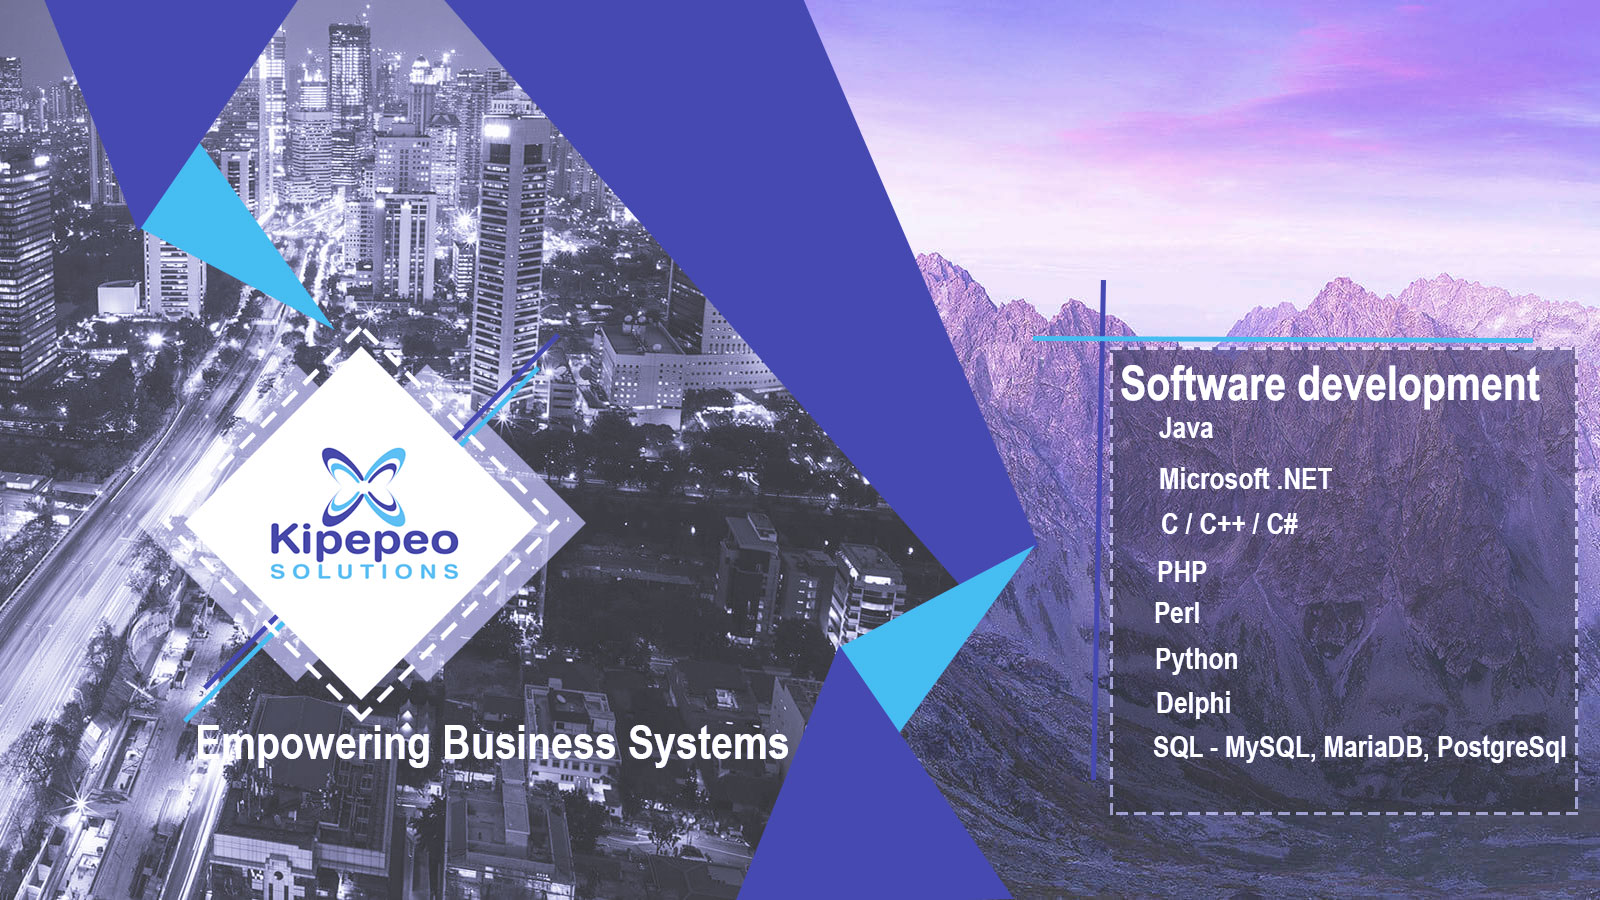 Kipepeo Solutions System Software Development